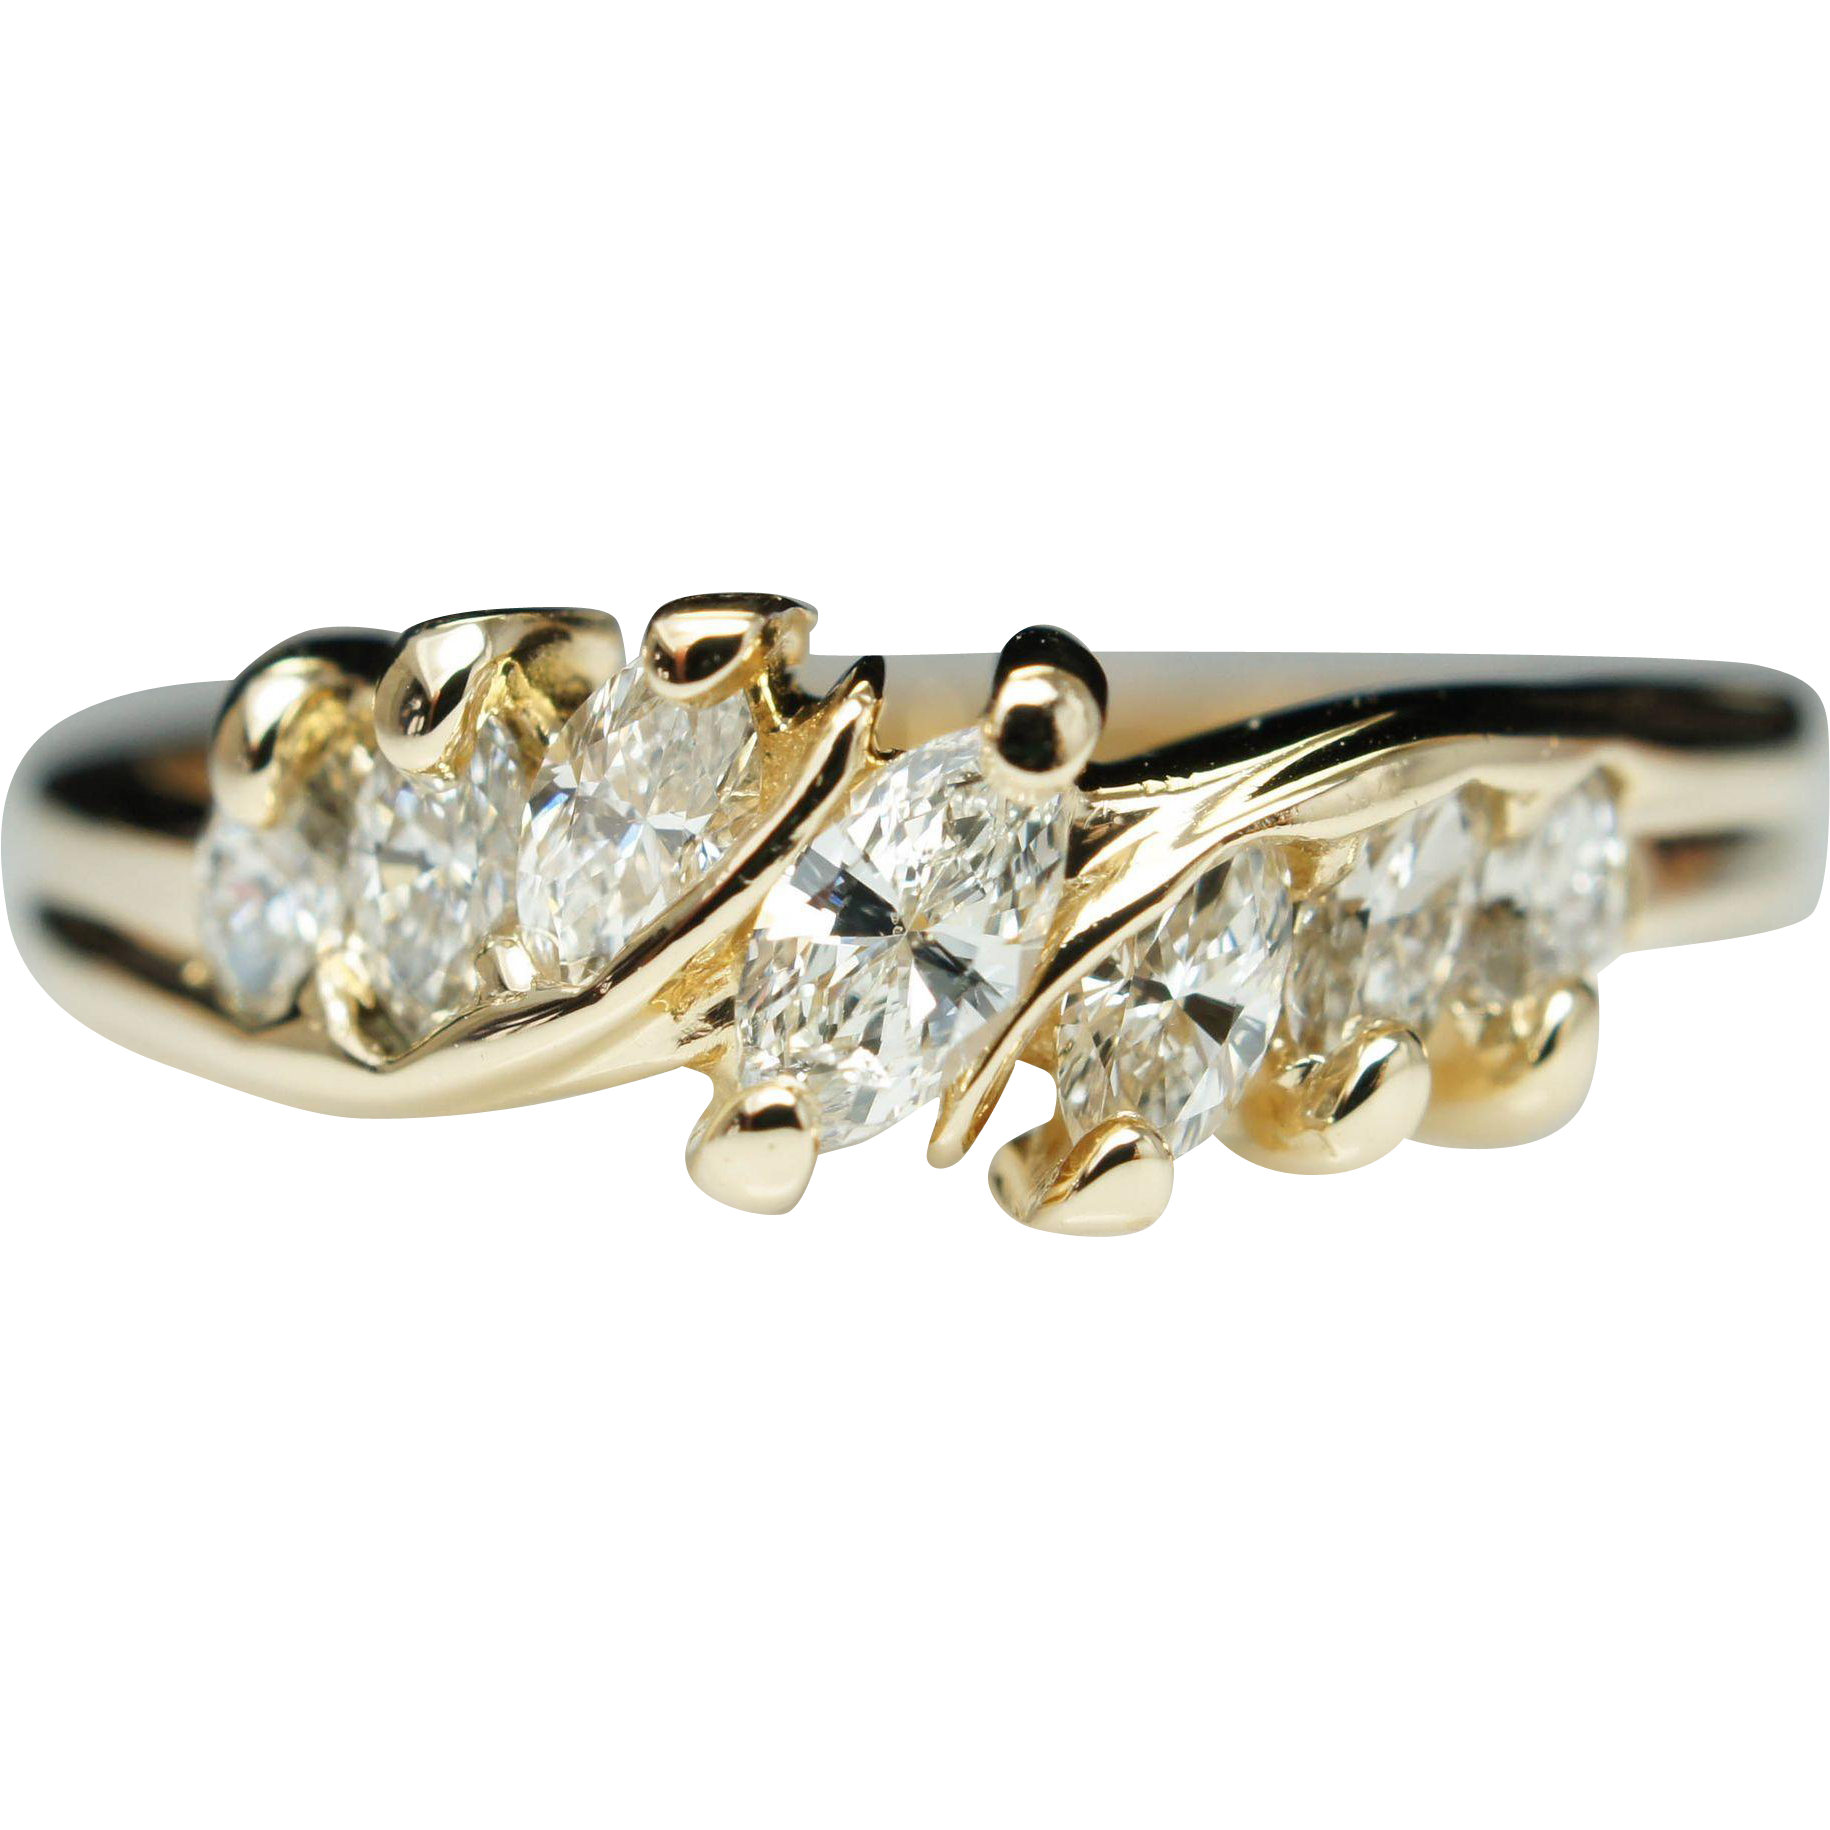 Vintage Marquise Cut Diamond Engagement Band Ring 14k Yellow Gold from jkjc o